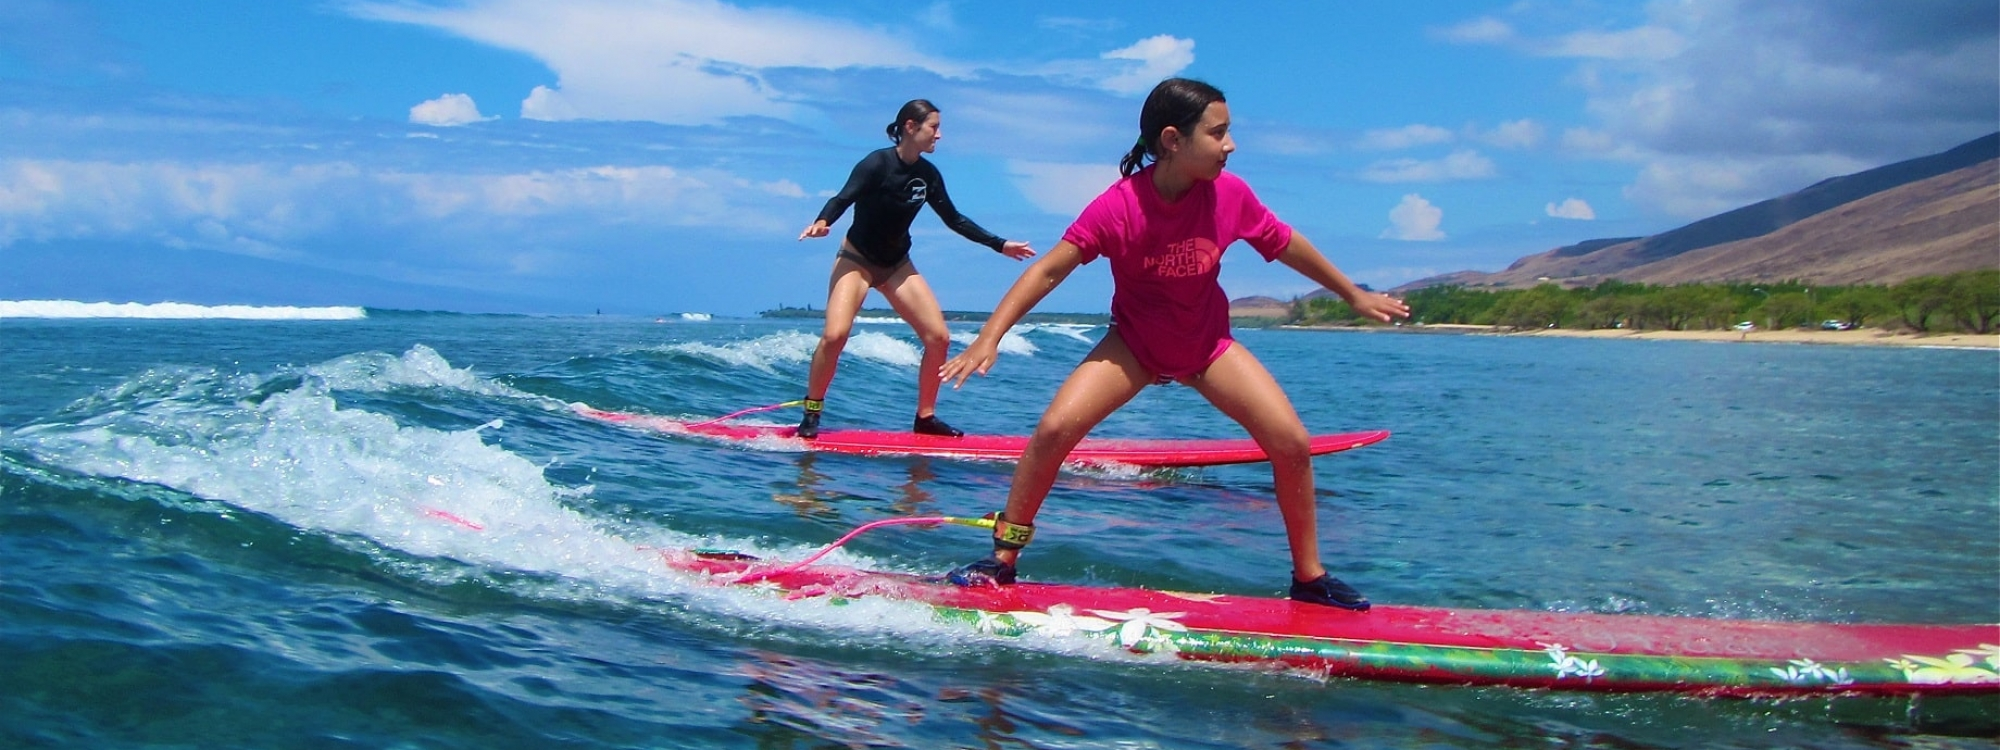 All Necessary Equipment Will Be Provided For Your Lesson And Your Entire Surfing Experience Is Backed By SSM's 100% Satisfaction Guarantee !